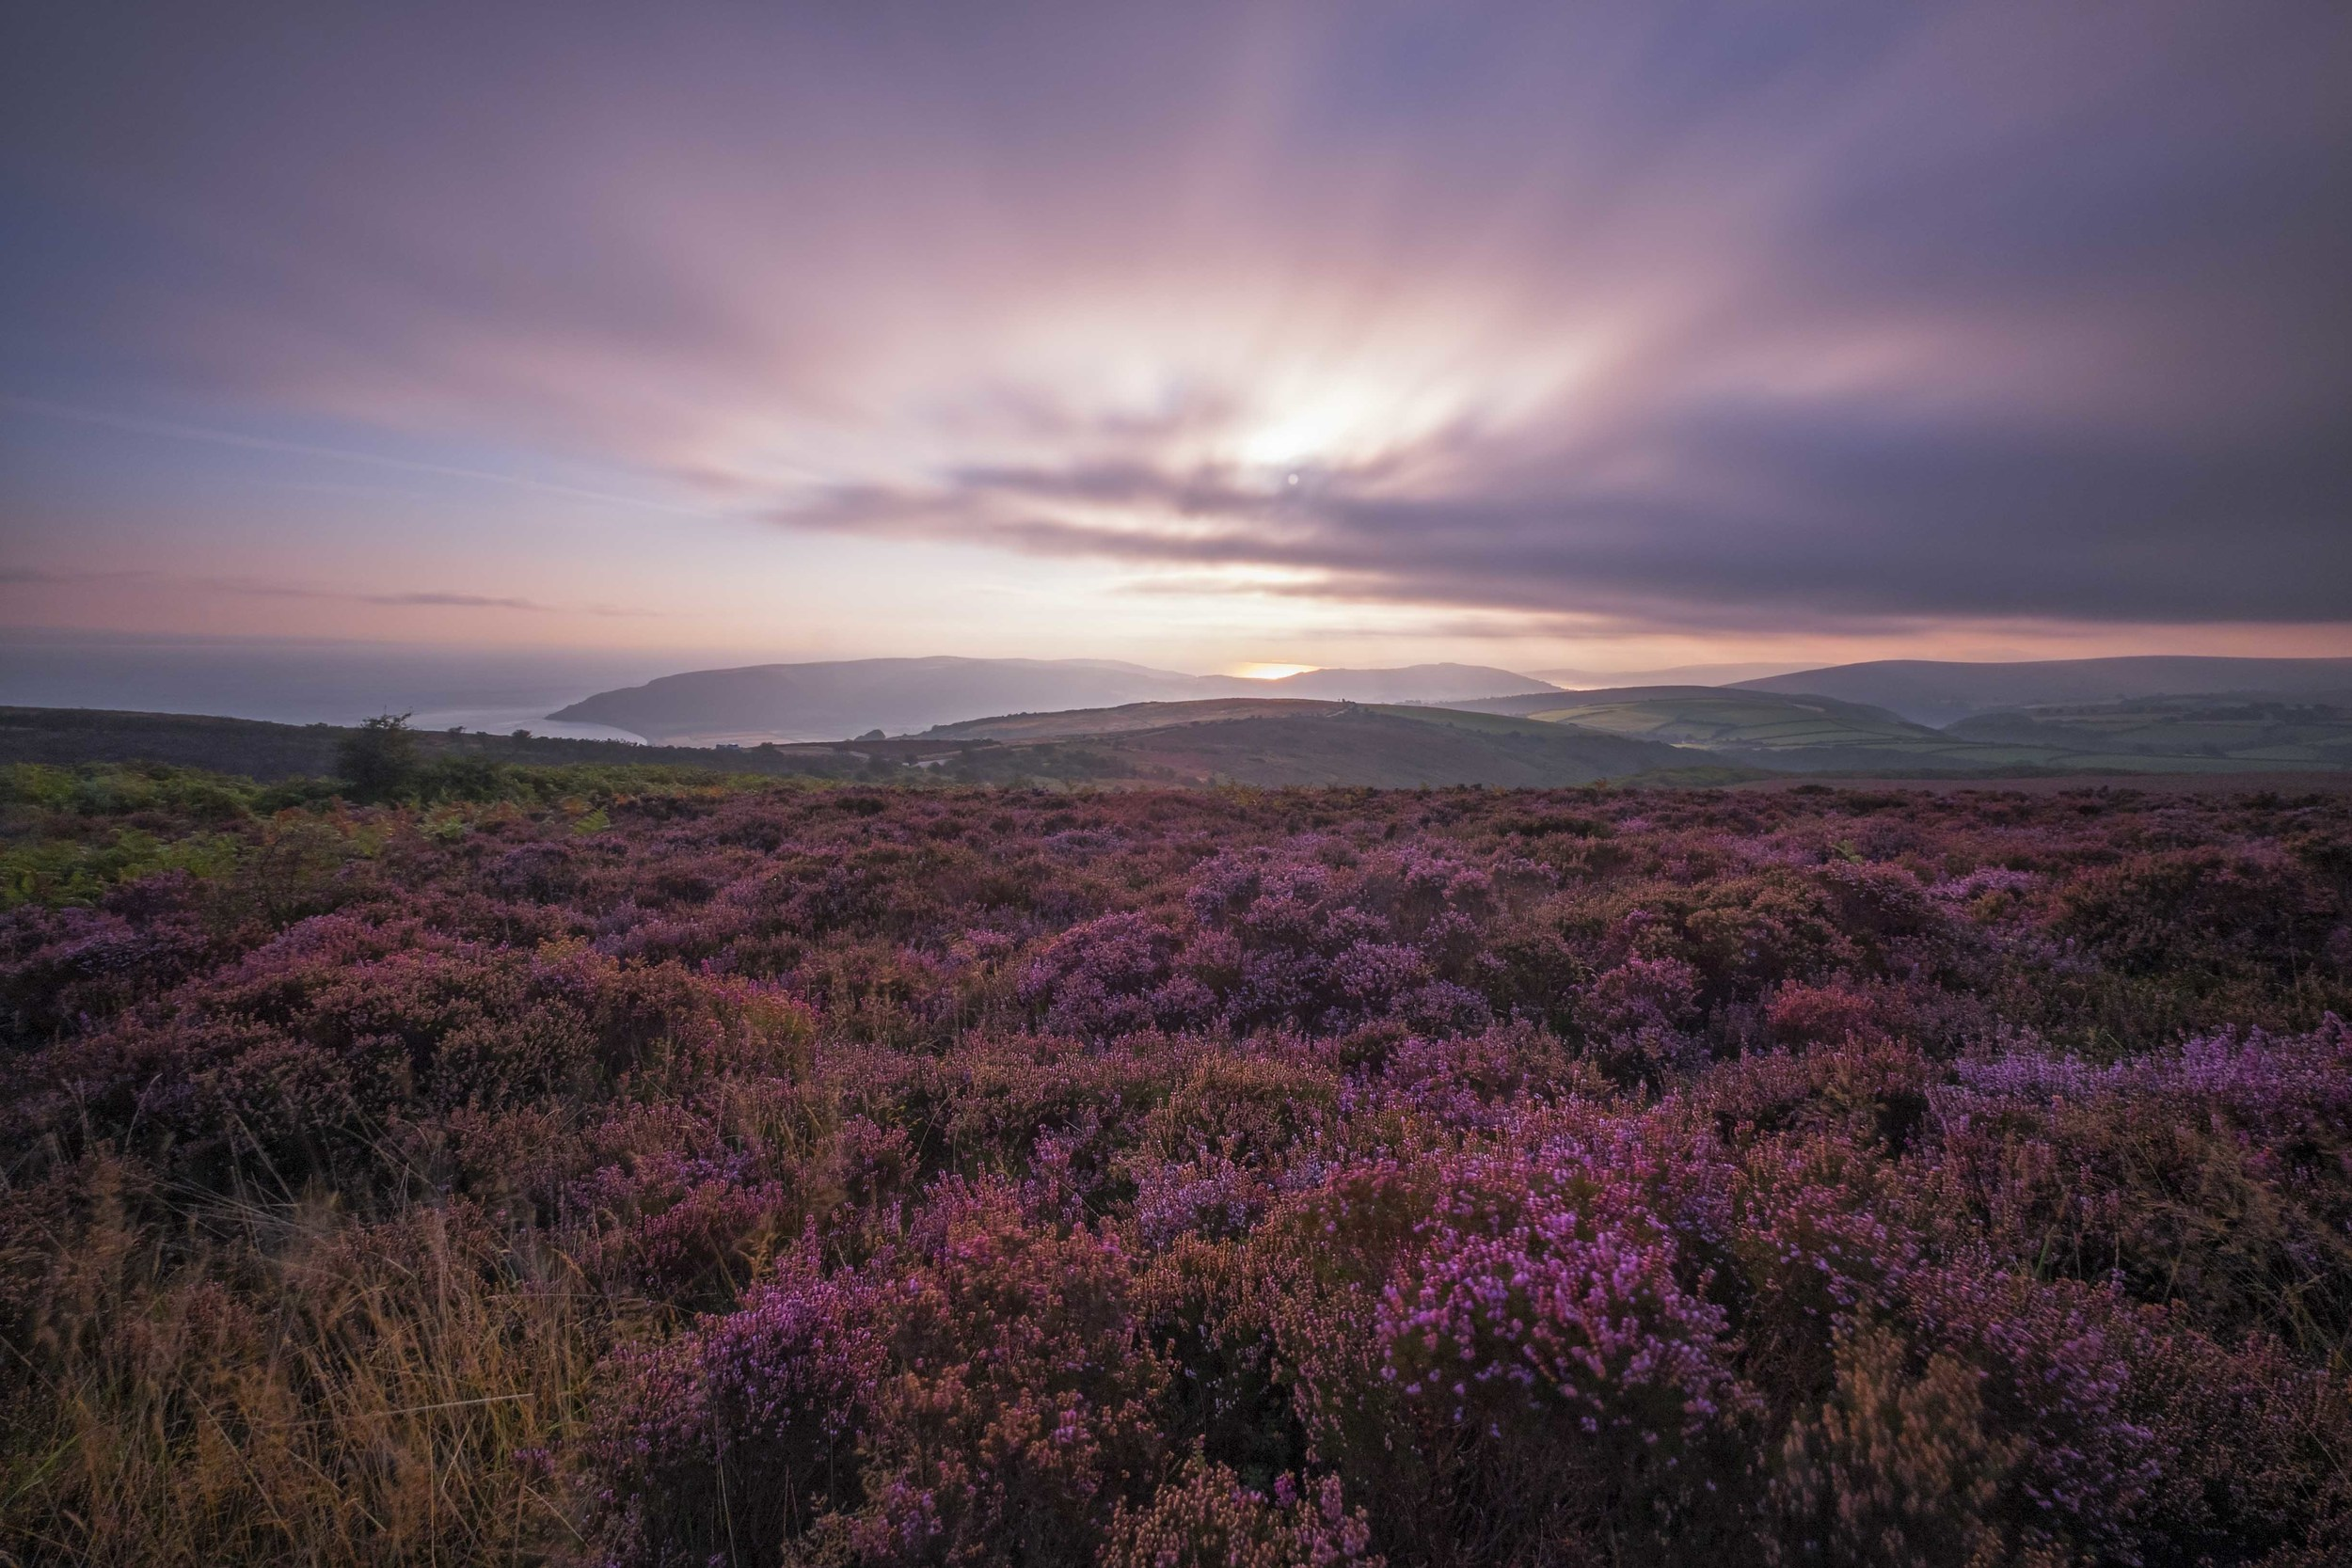 """Purple Haze"" - Exmoor, Devon, England Fujifilm X-T1 + 10-24mm f/4 OIS @ f/10. 20 Seconds."